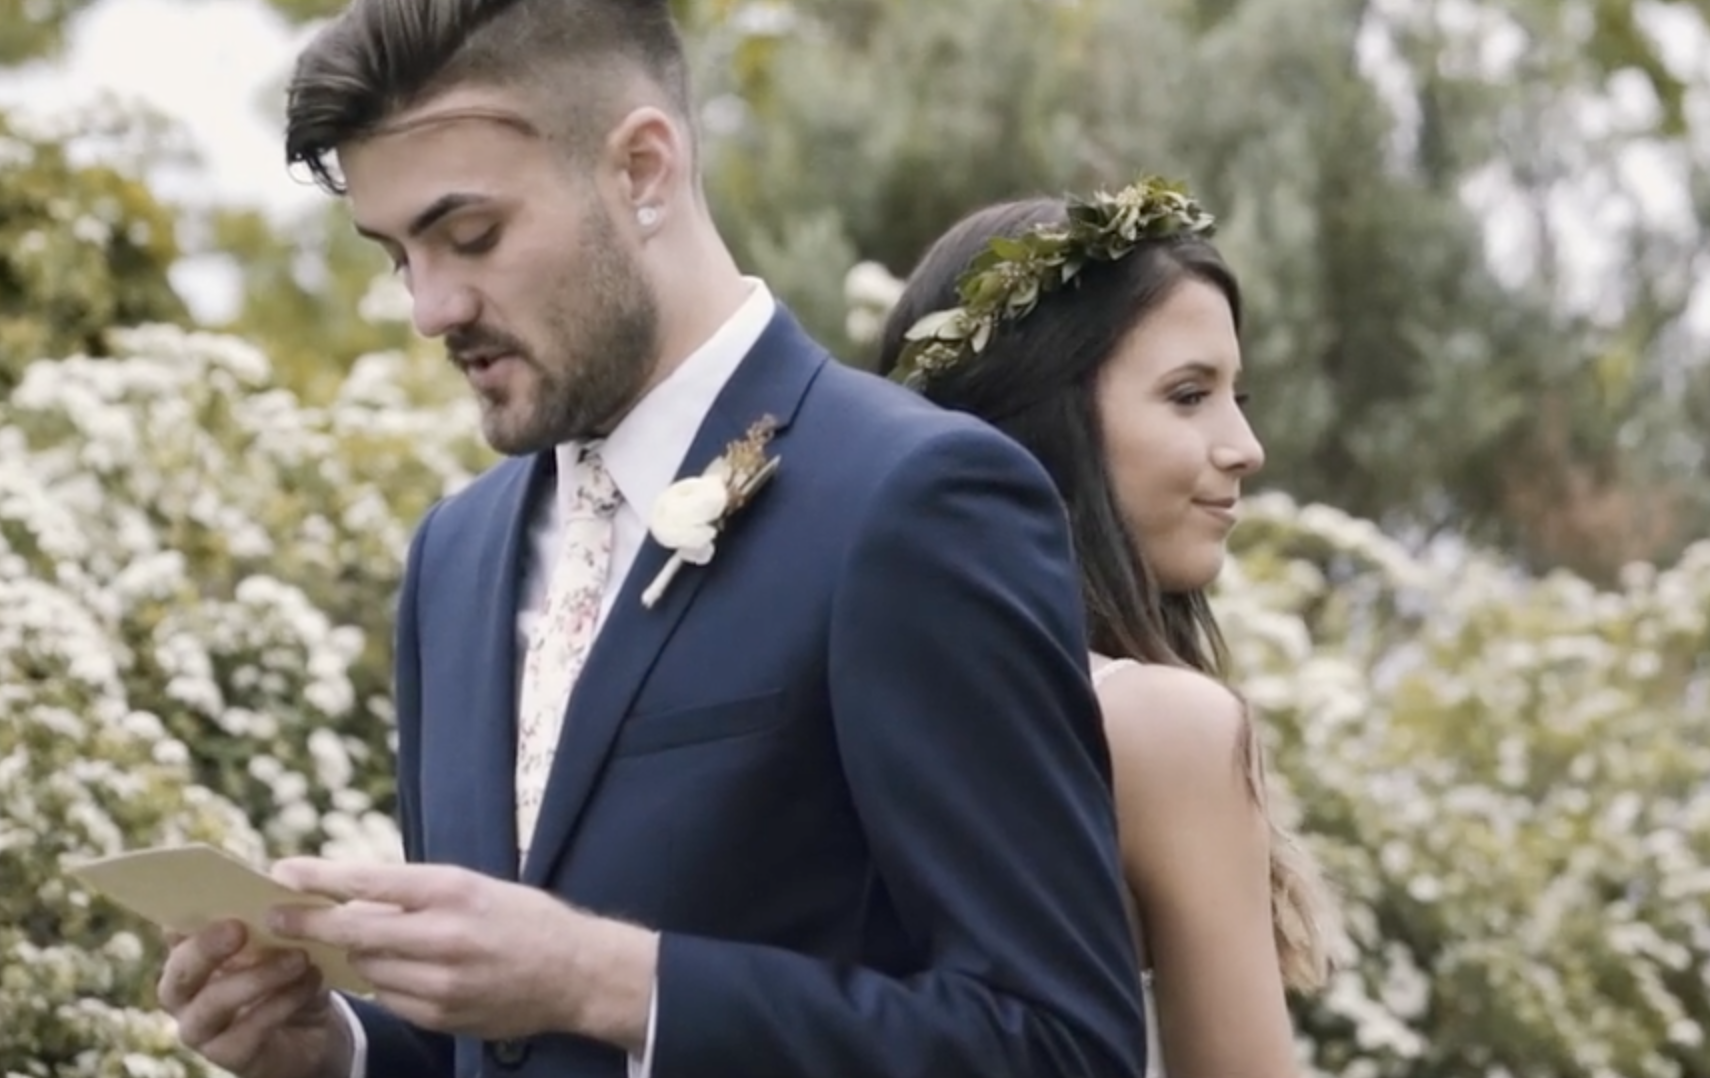 Watch Incredible Vows That Will Make You Cry In This Beautiful Boho